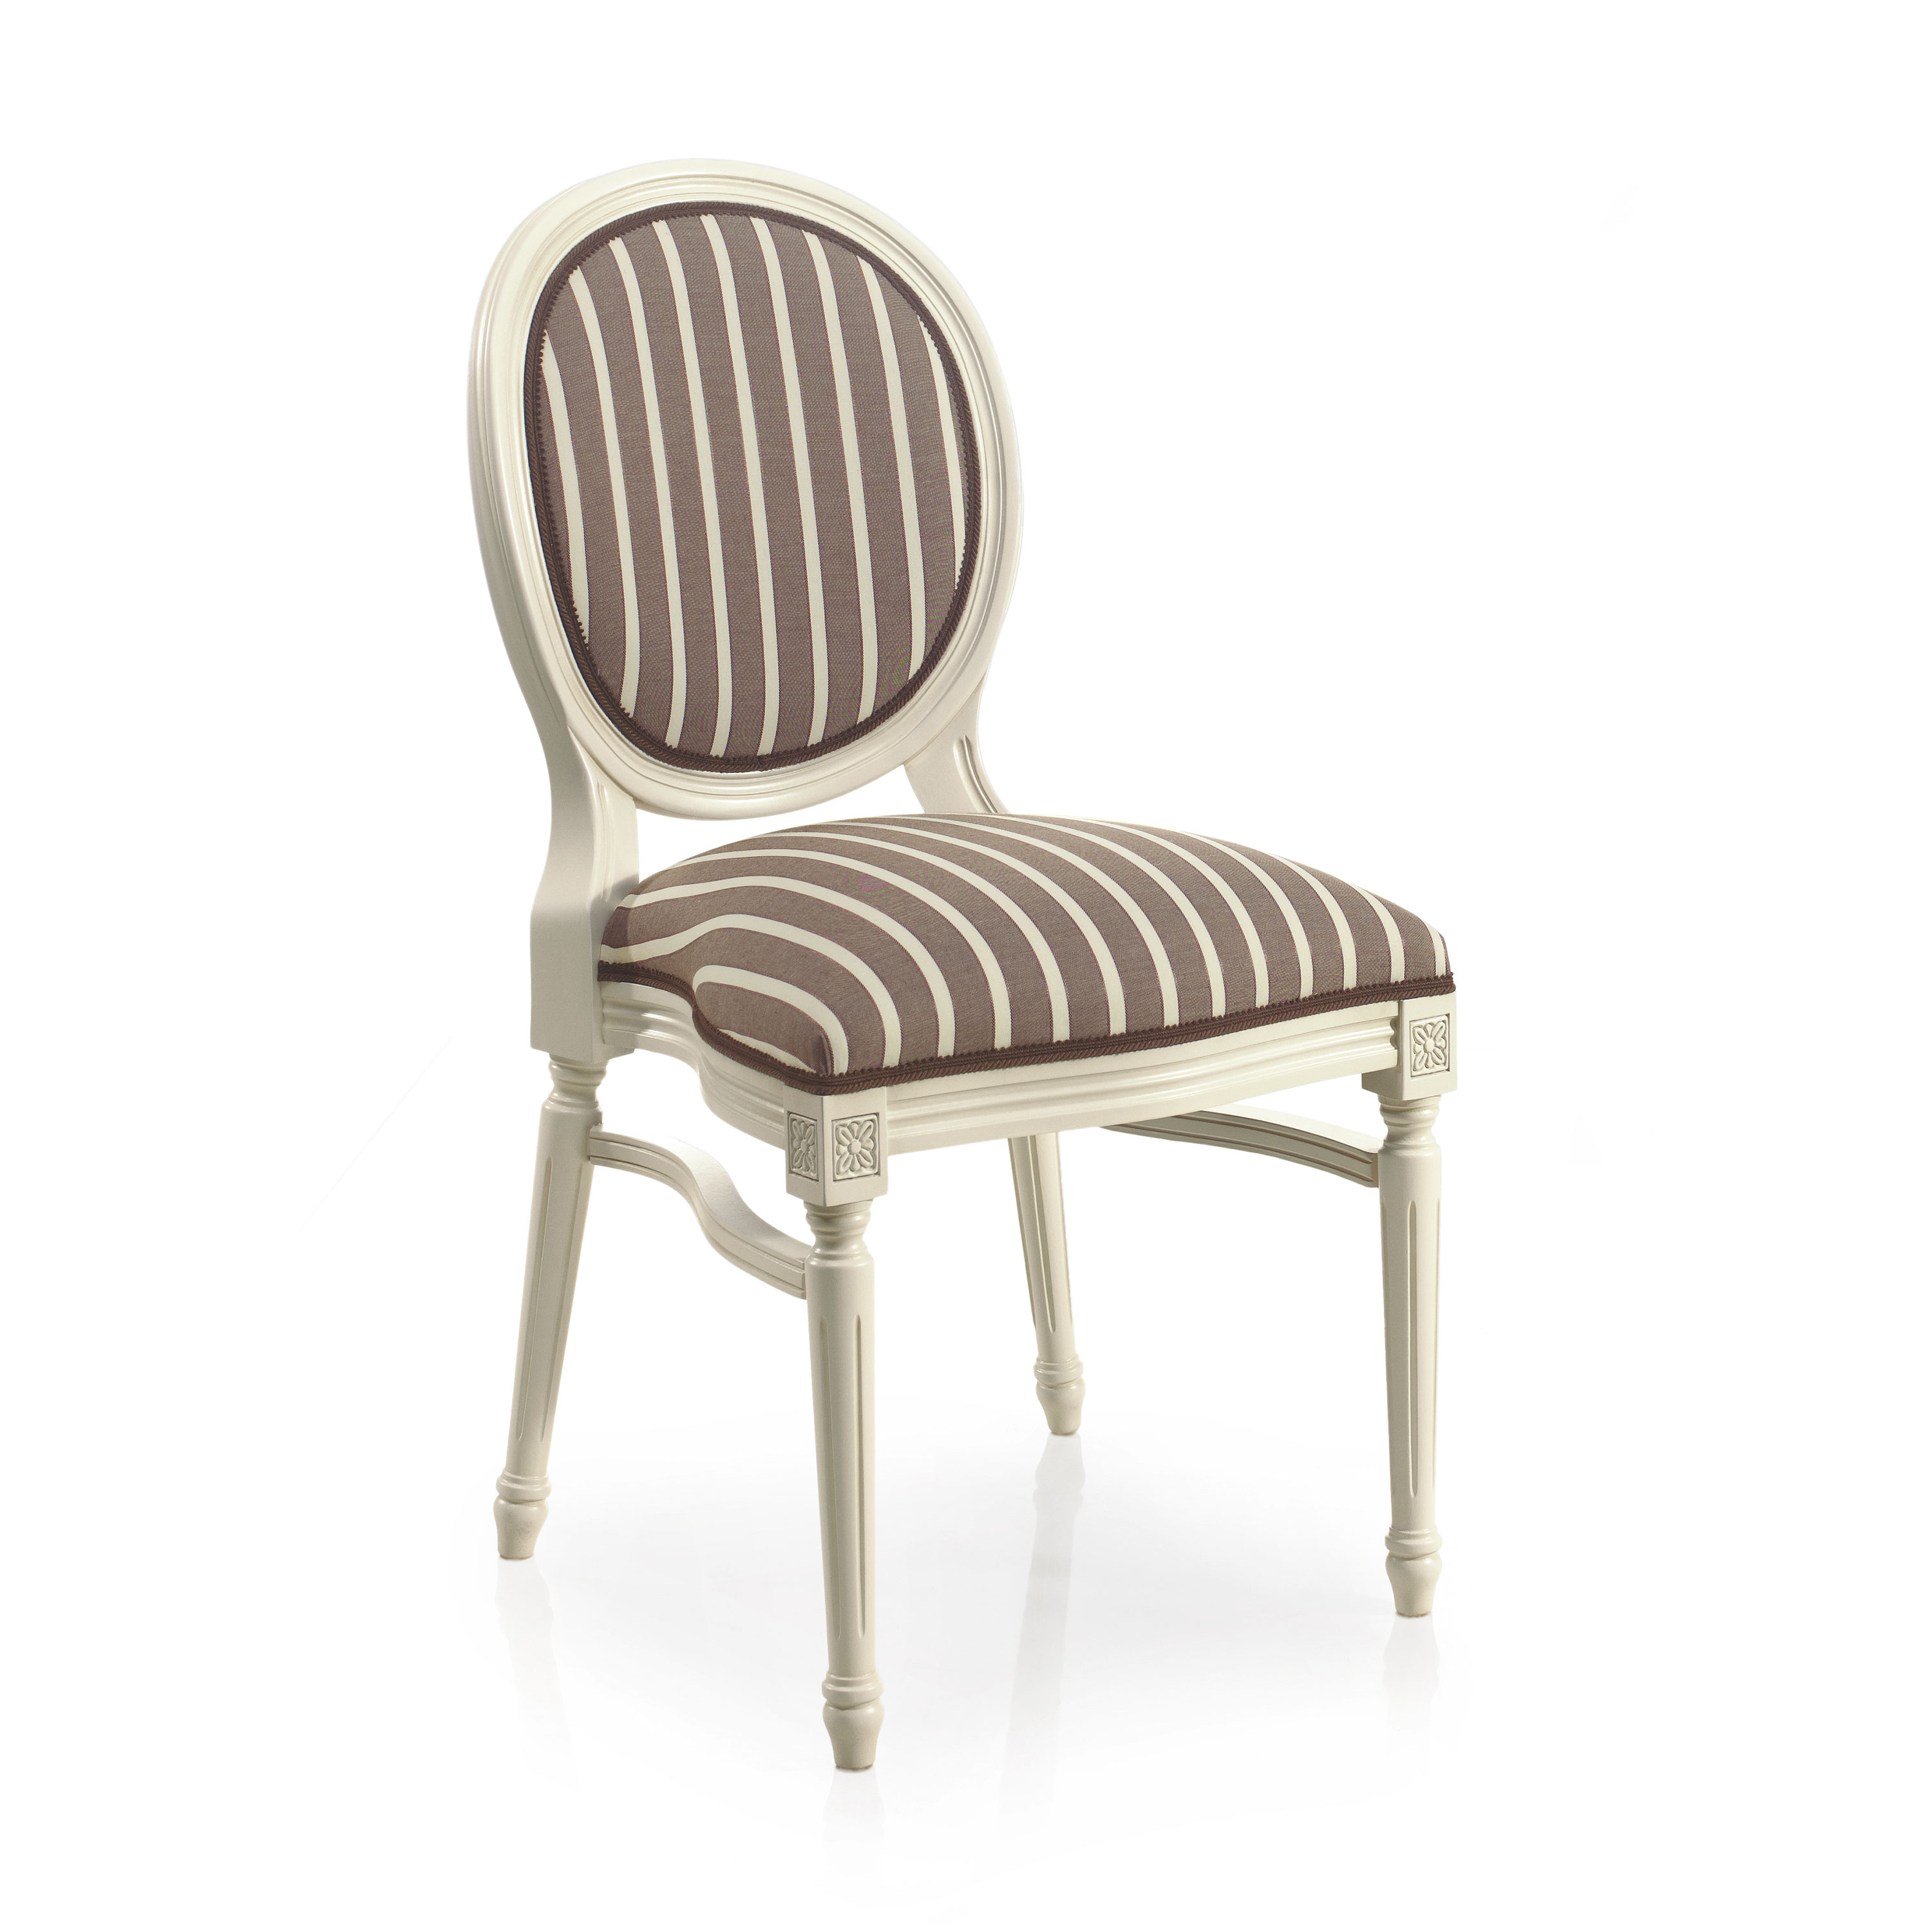 Classic Style Chair Made of Wood Luigi 341 Sevense